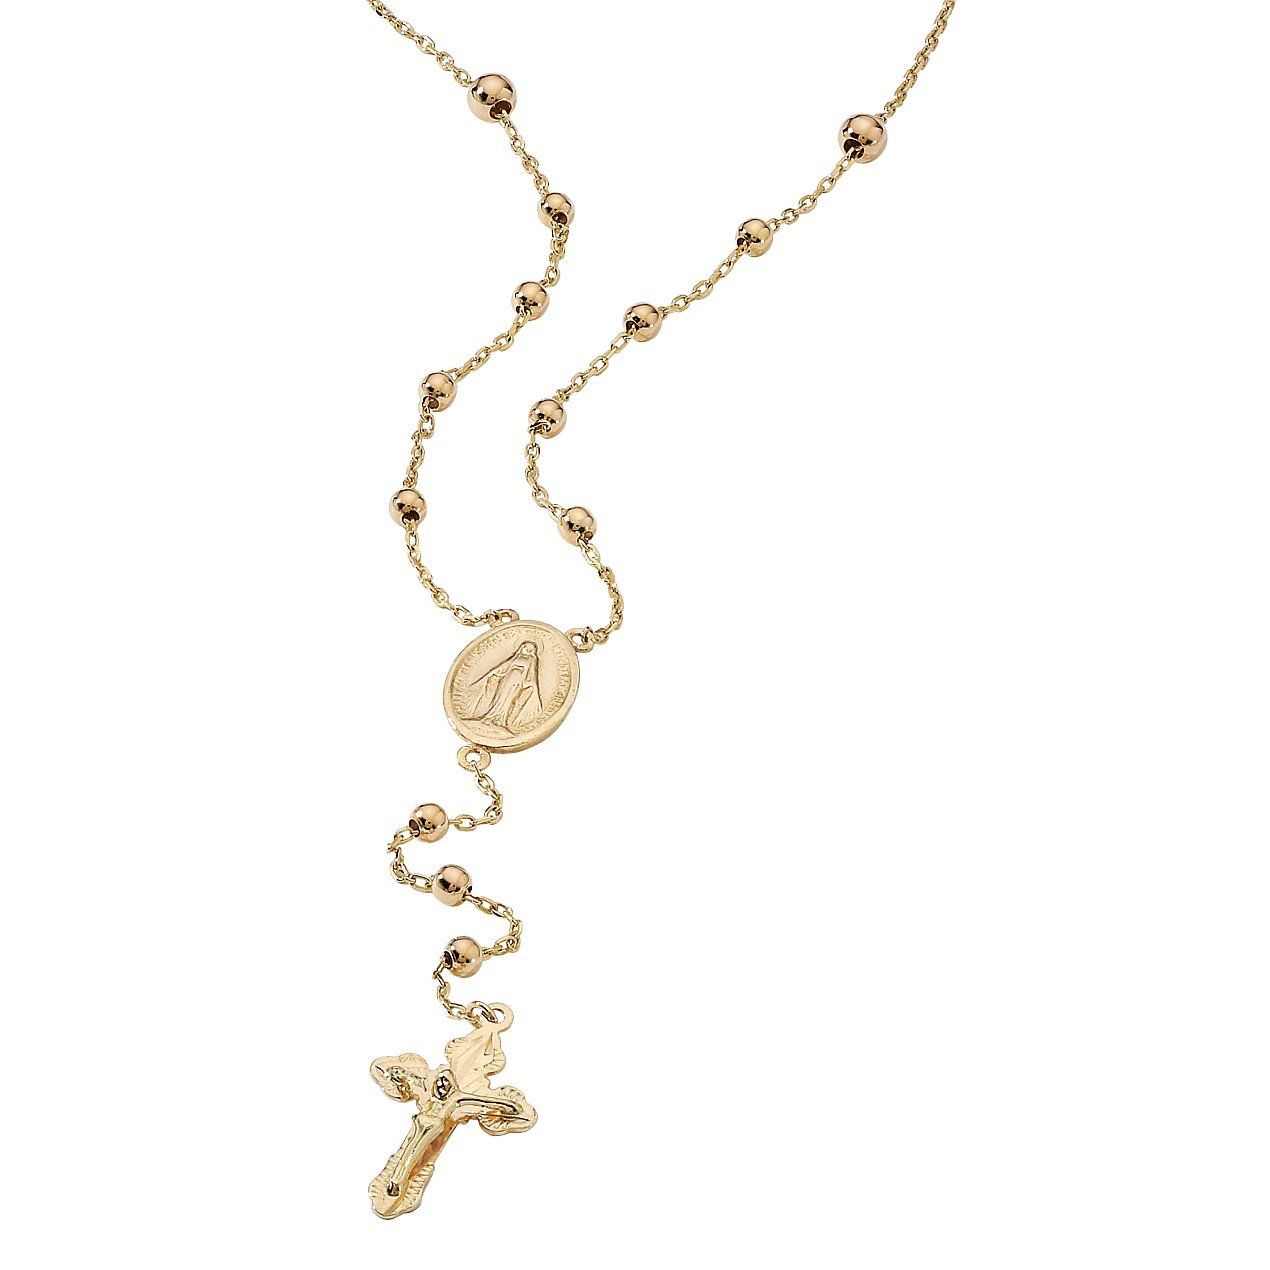 18k Gold over .925 Sterling Silver Rosary-Style Necklace 17''